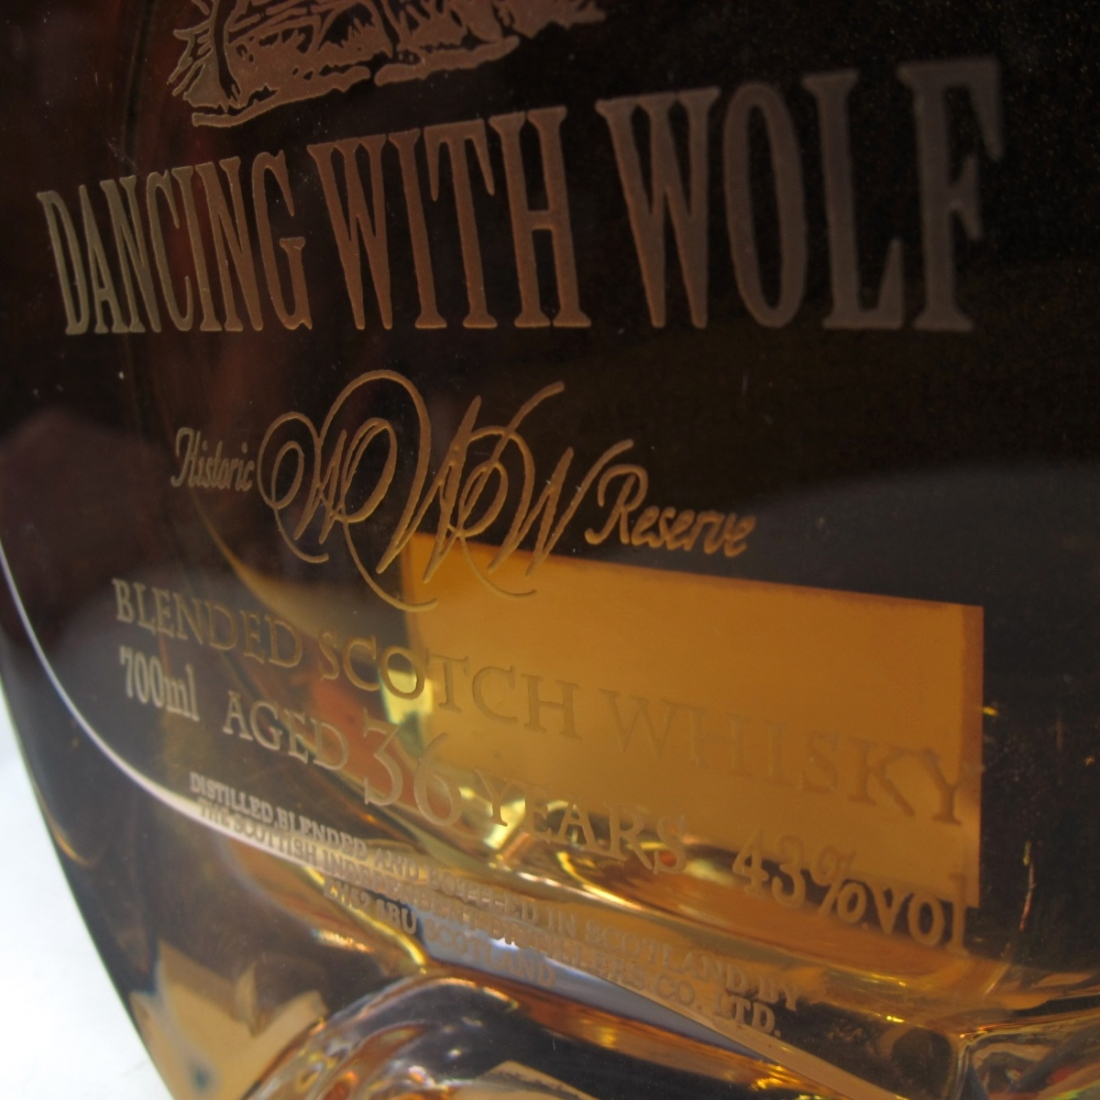 *Dancing With Wolf 36 Year Old Blended Scotch Decanter / Taiwanese Import